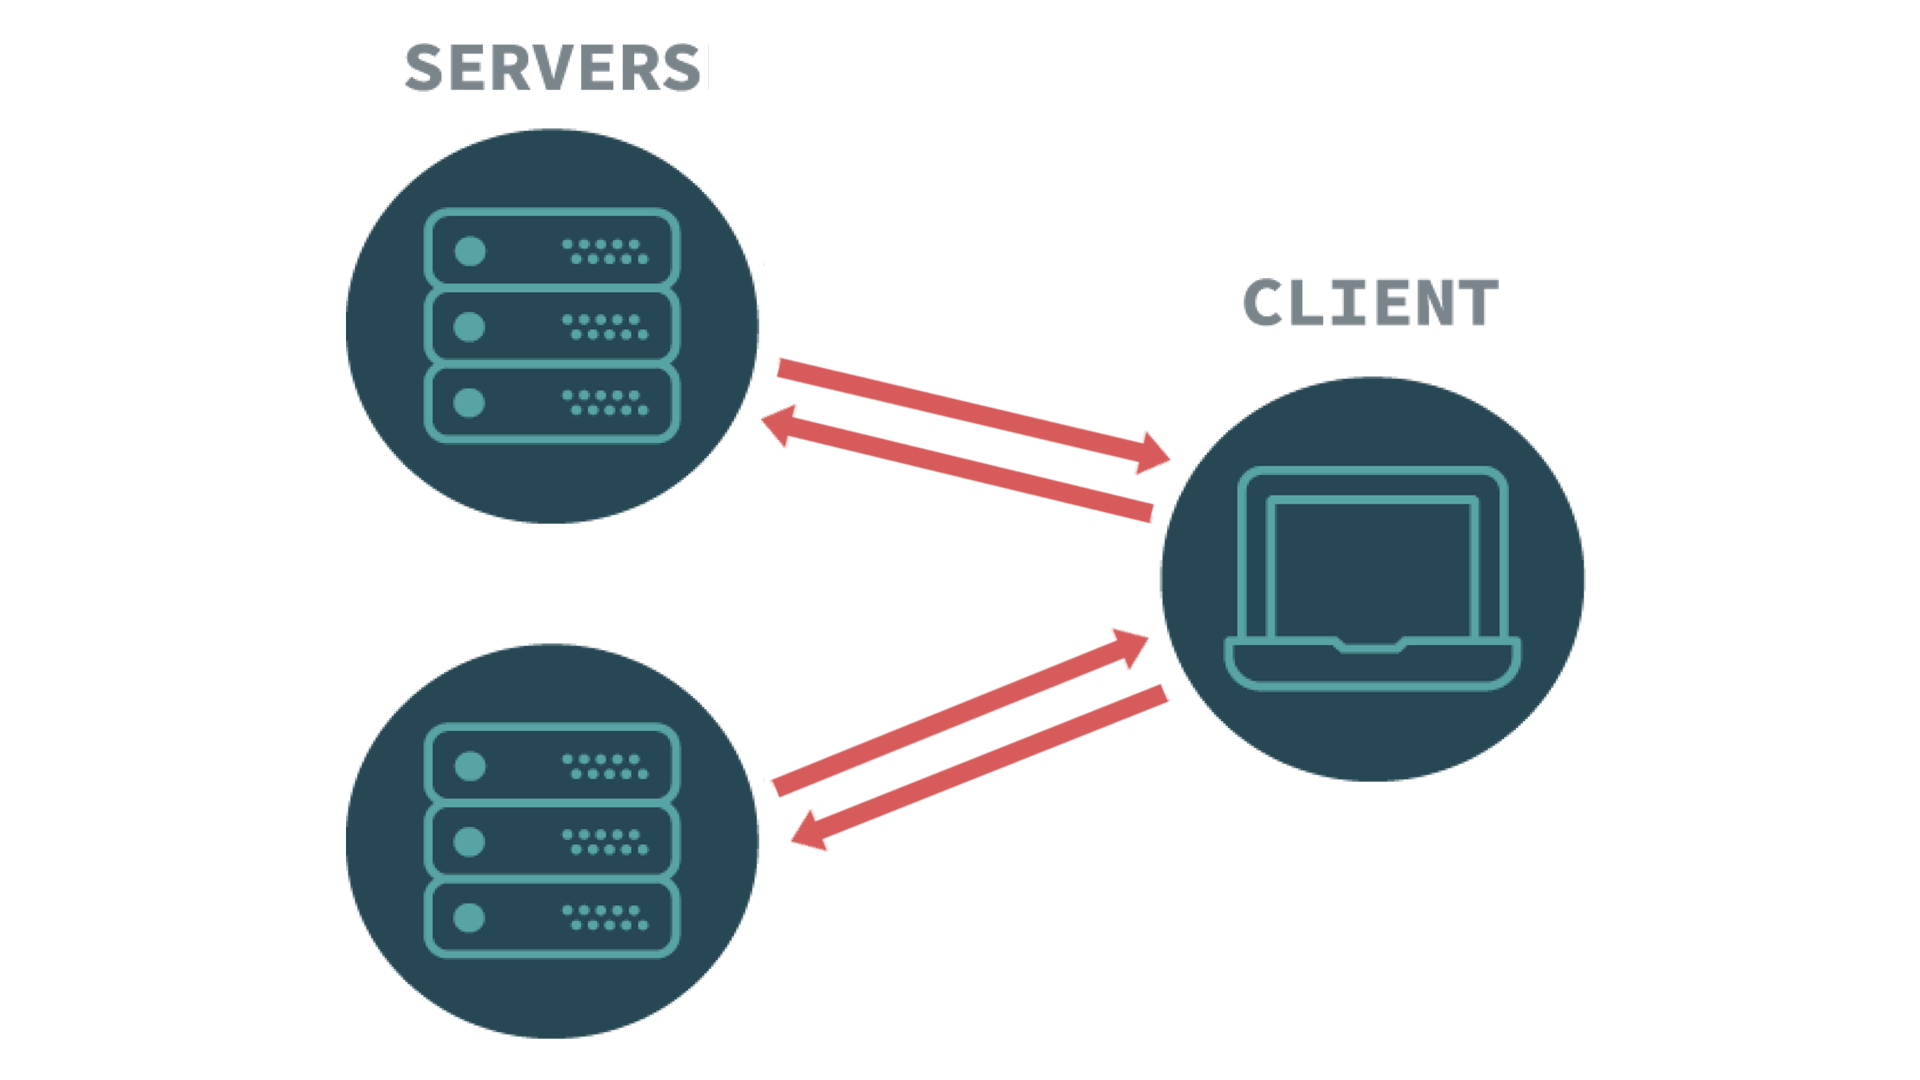 REST Client-Server Architecture diagram